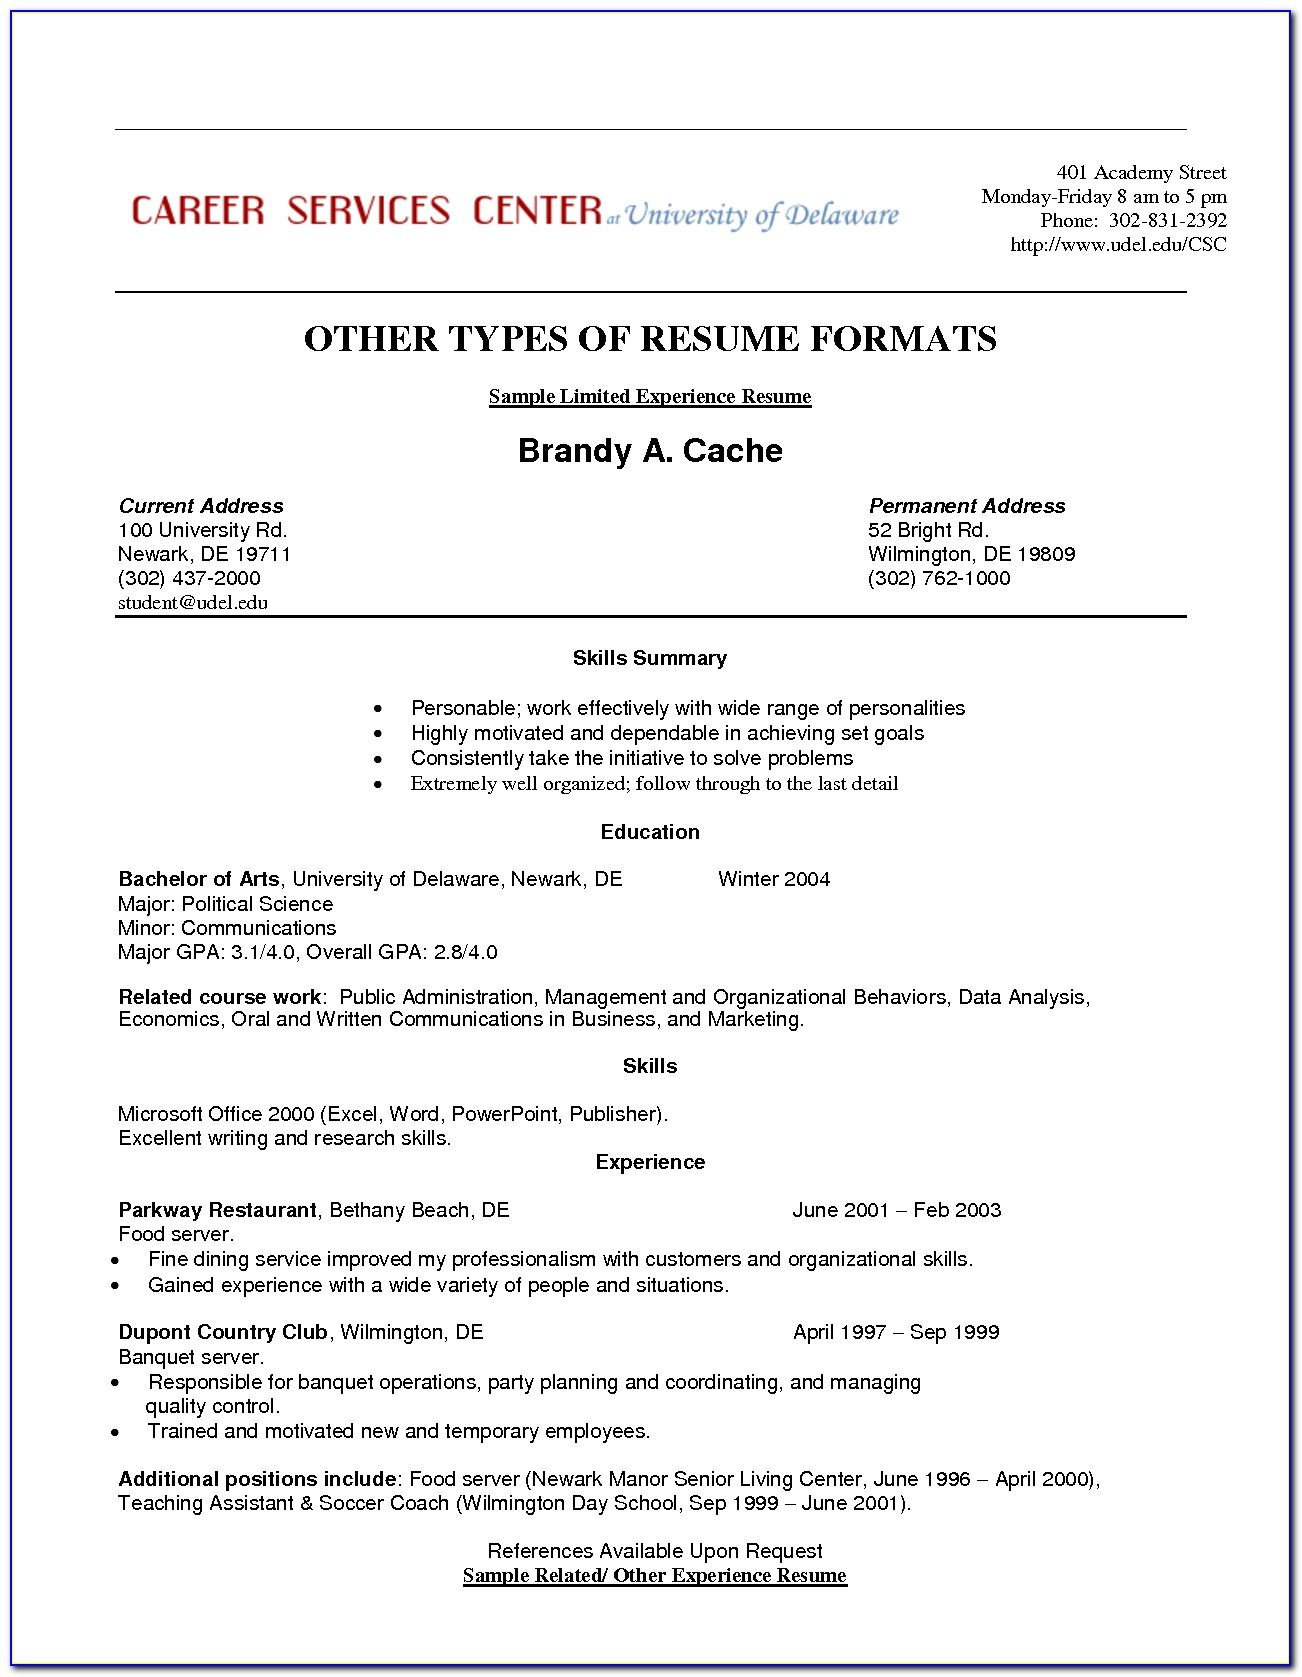 Resume Template For Medical Field